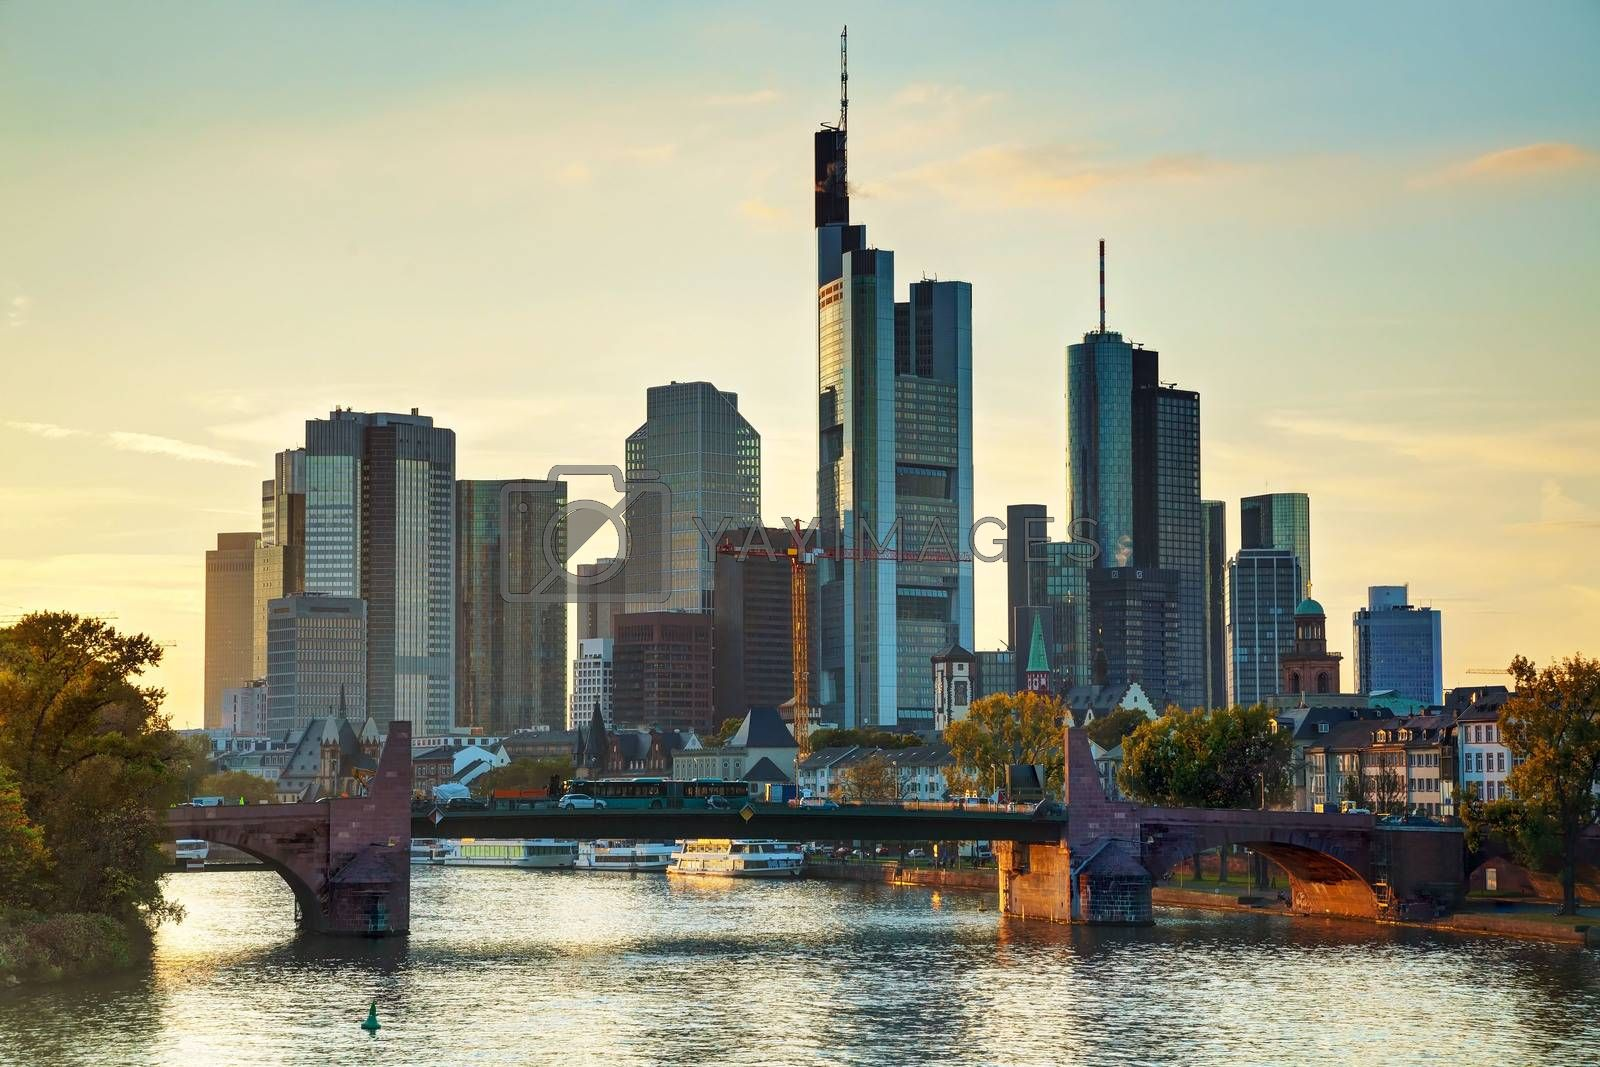 Frankfurt cityscape at sunset by AndreyKr